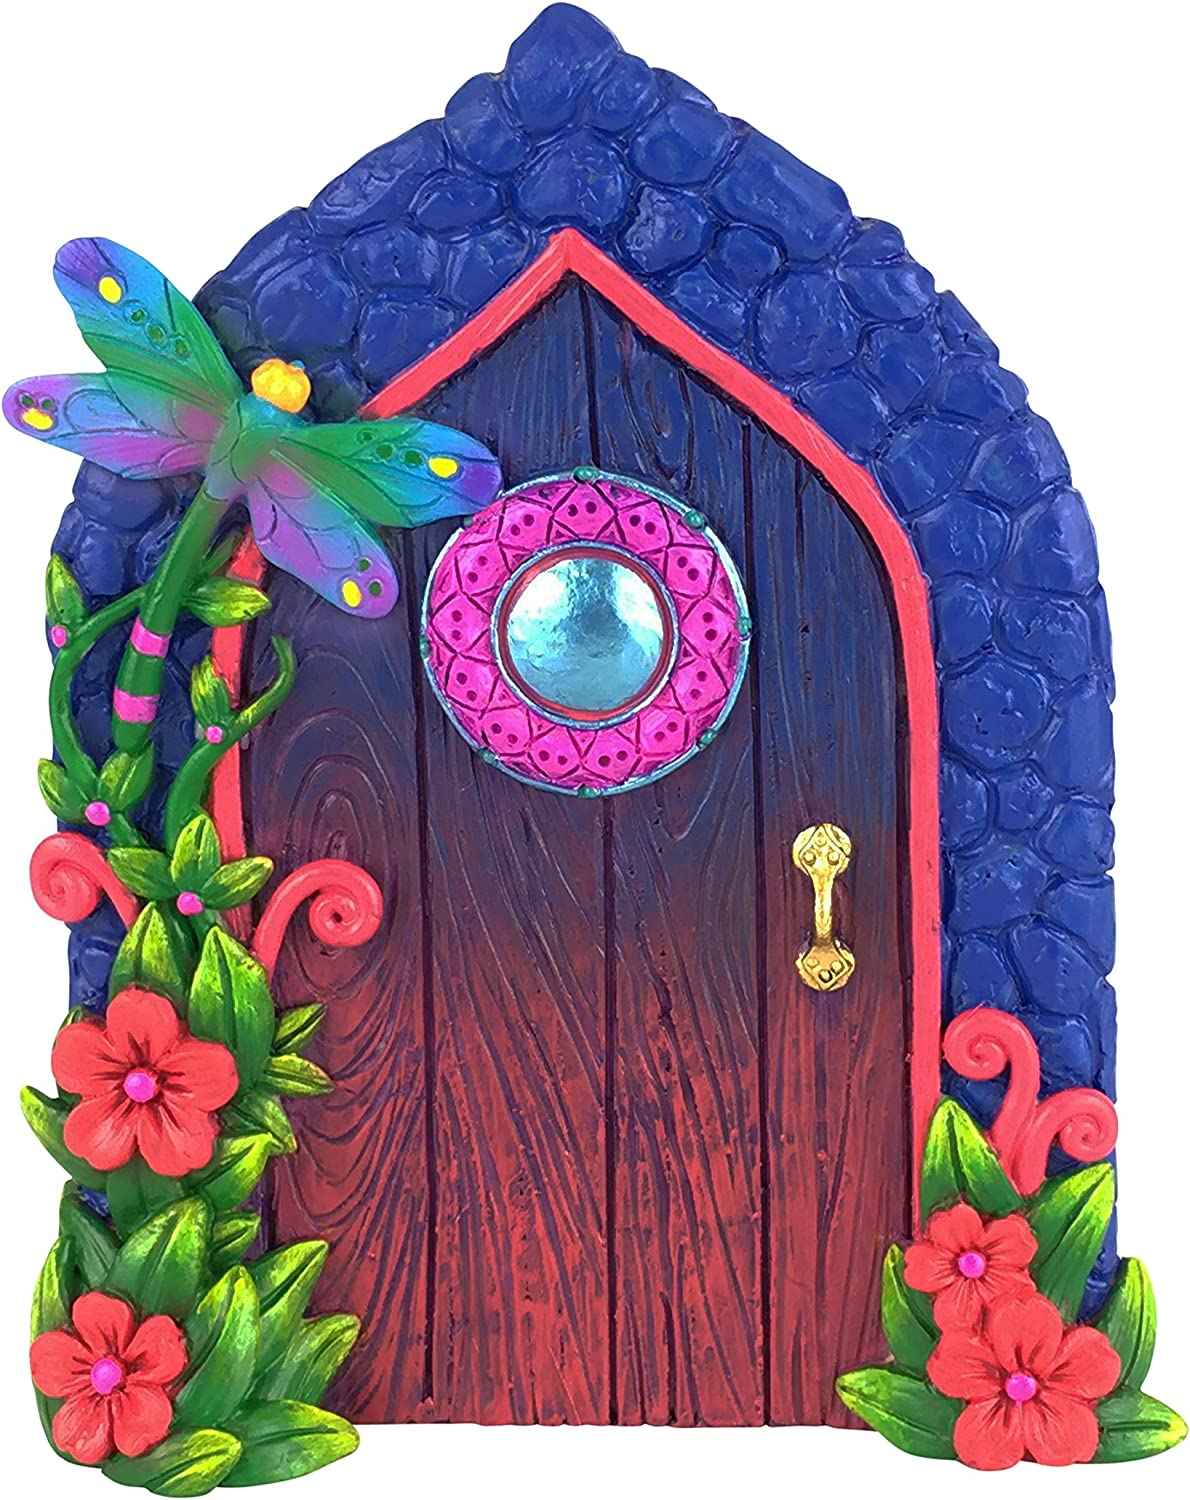 GlitZGlam Miniature Dragonfly Fairy Door for The Enchanted Garden Fairies and Gnomes. A Fairy and Gnome Garden Accessory